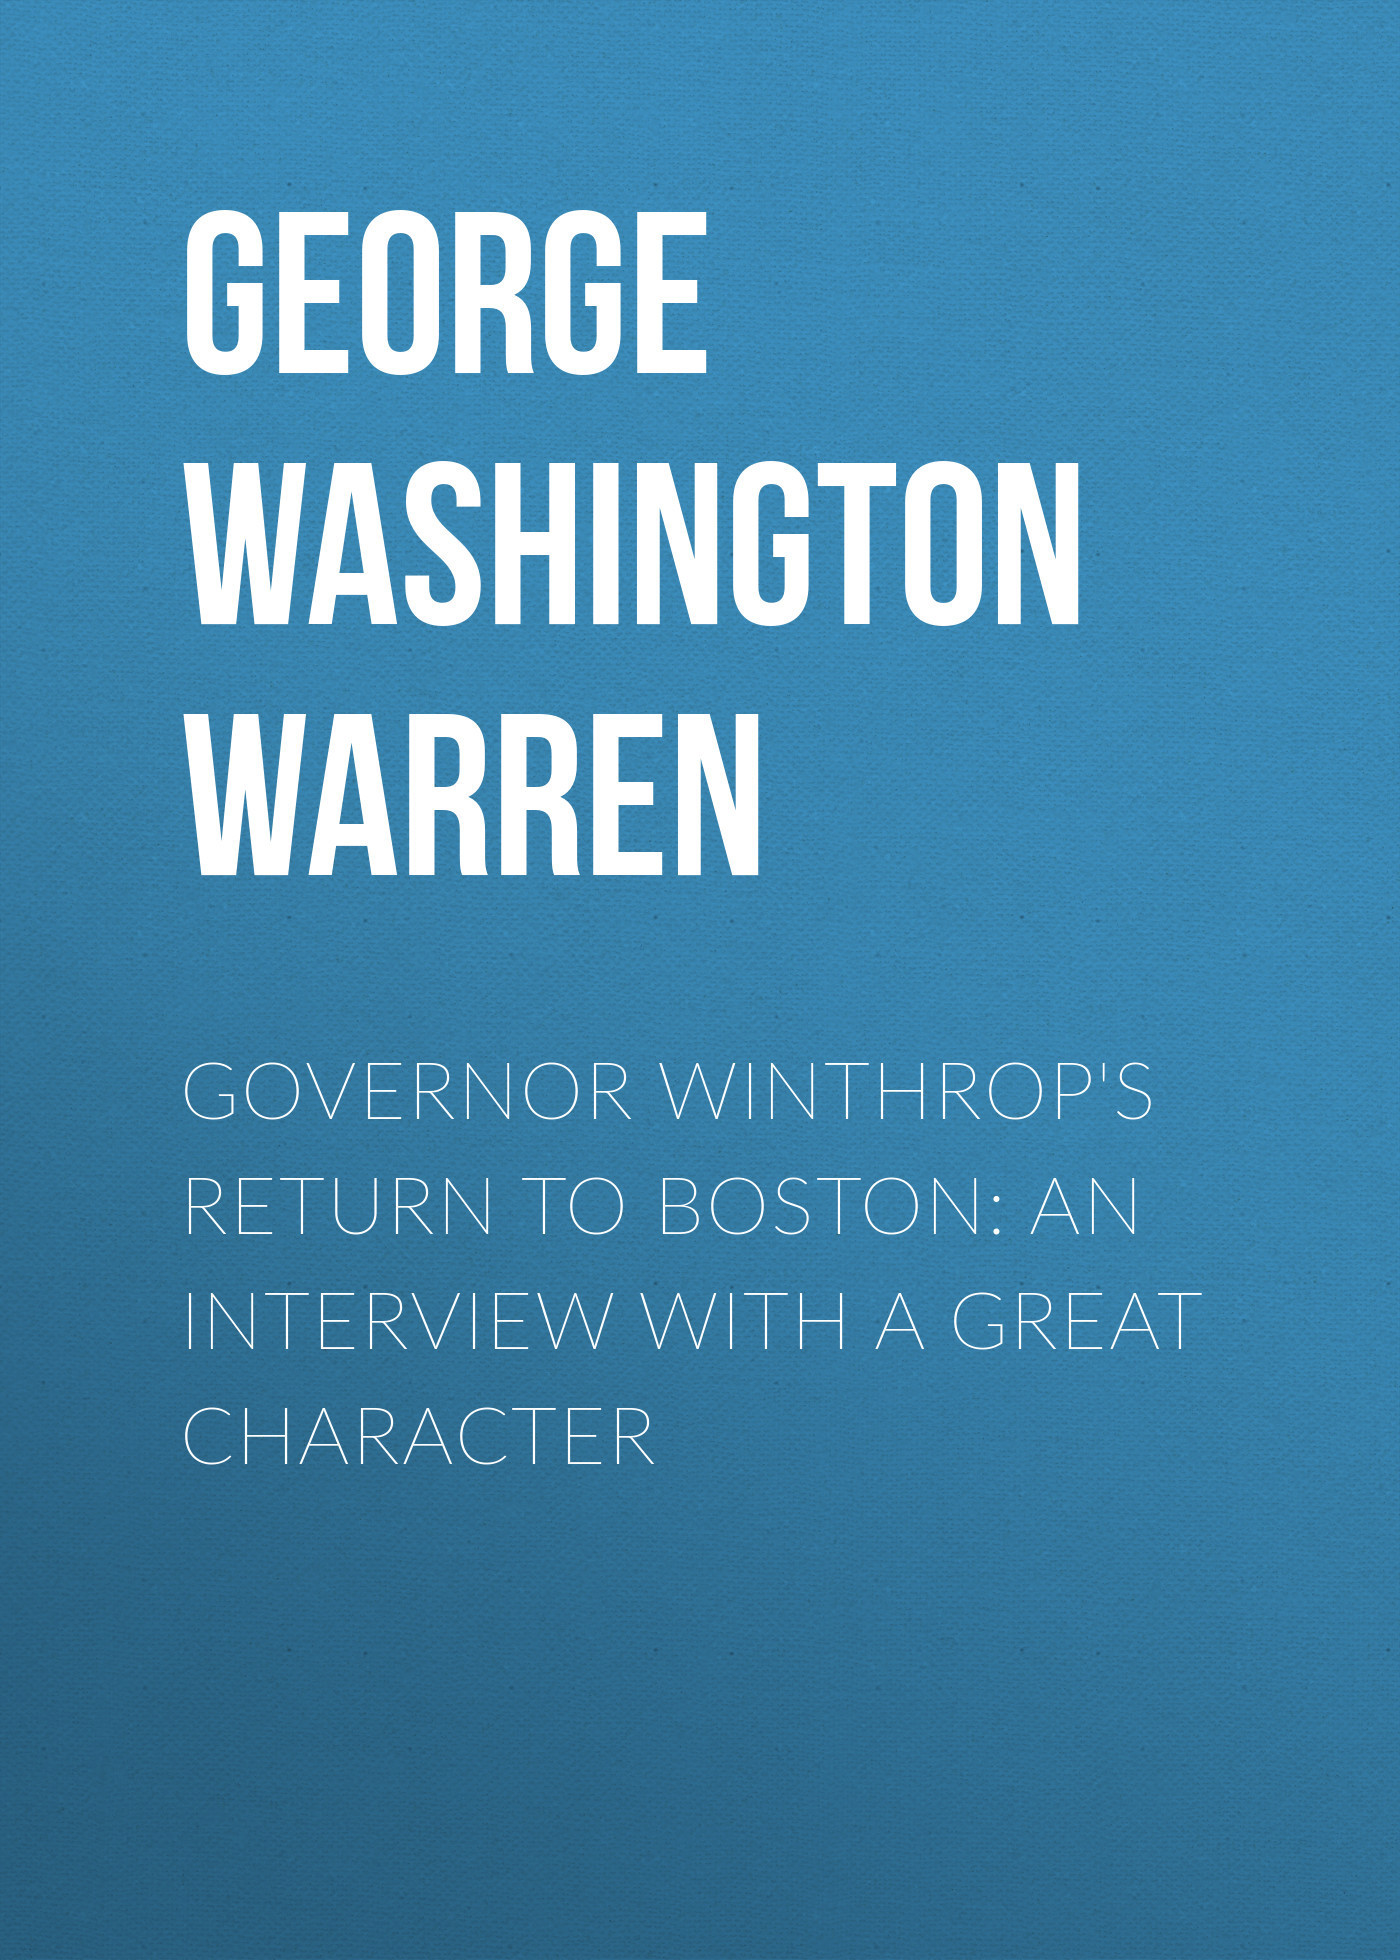 George Washington Warren Governor Winthrop's Return to Boston: An Interview with a Great Character edward lengel g a companion to george washington